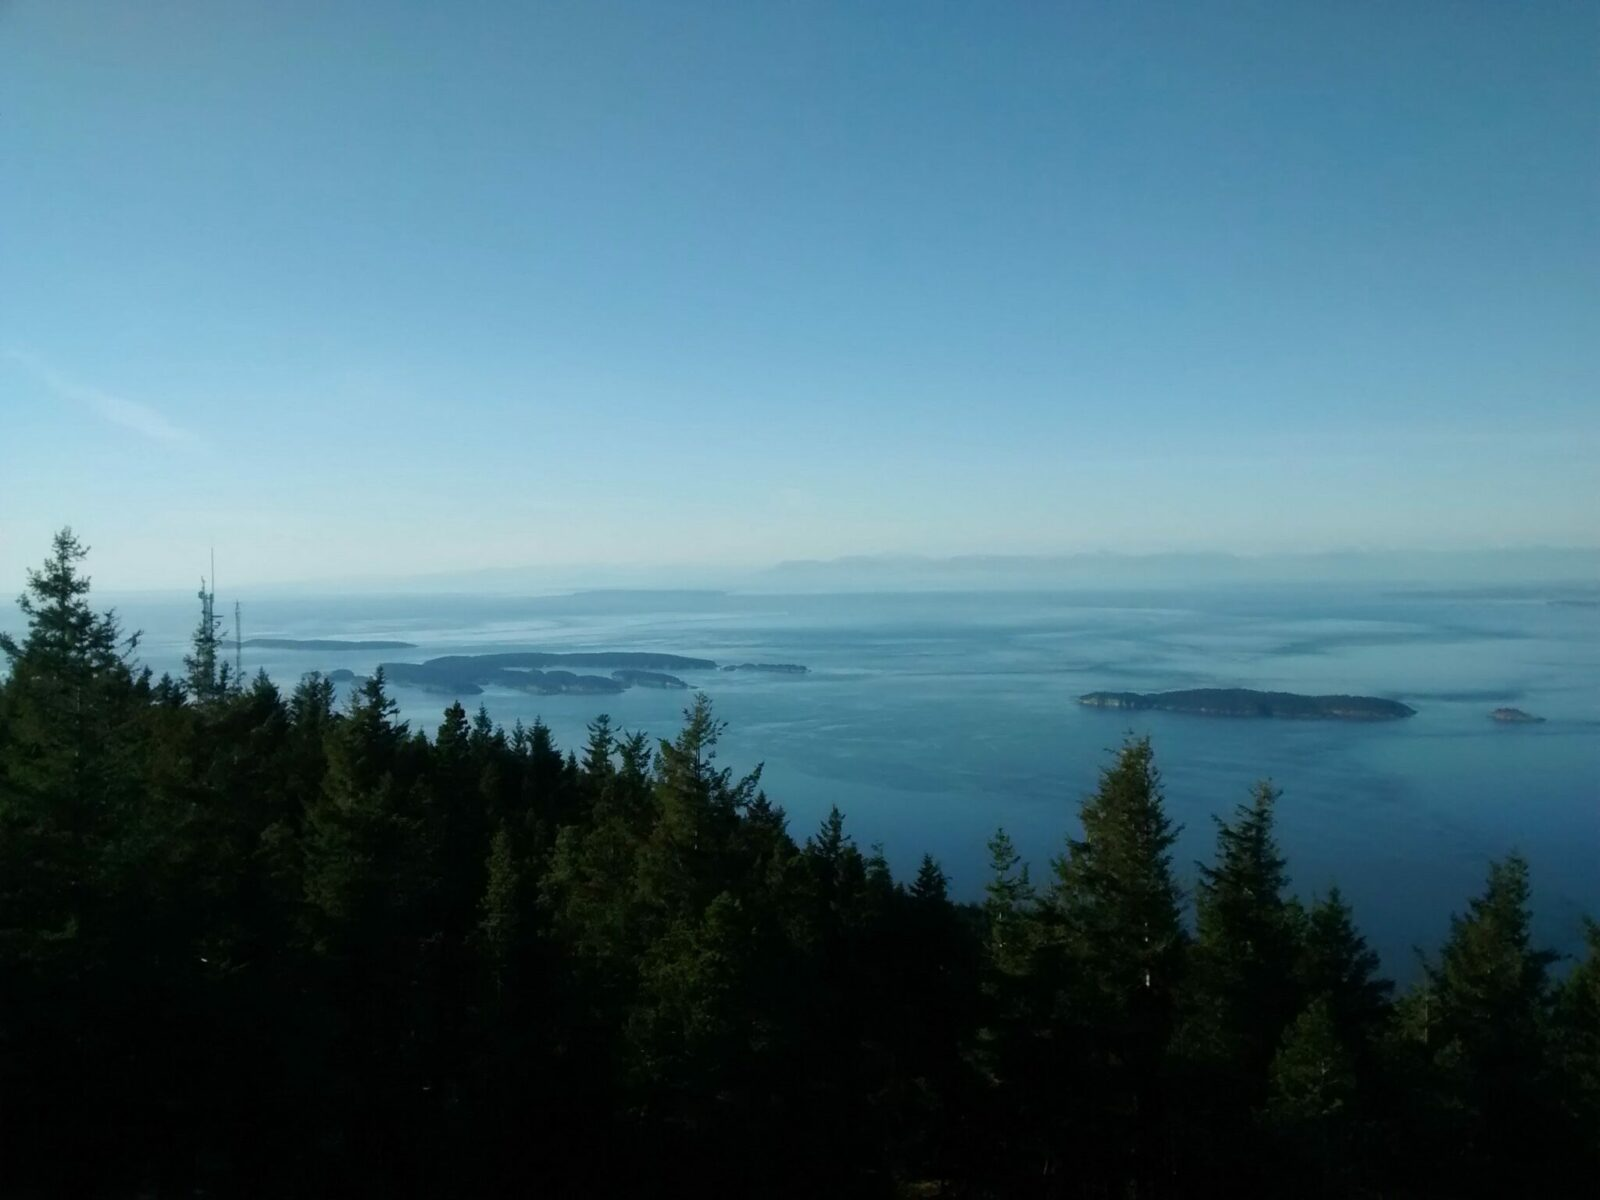 Sucia Island seen from the summit of Mt Constitution on Orcas Island. There are other islands visible in the water and a forest in the foreground and distant mountains in the hazy background